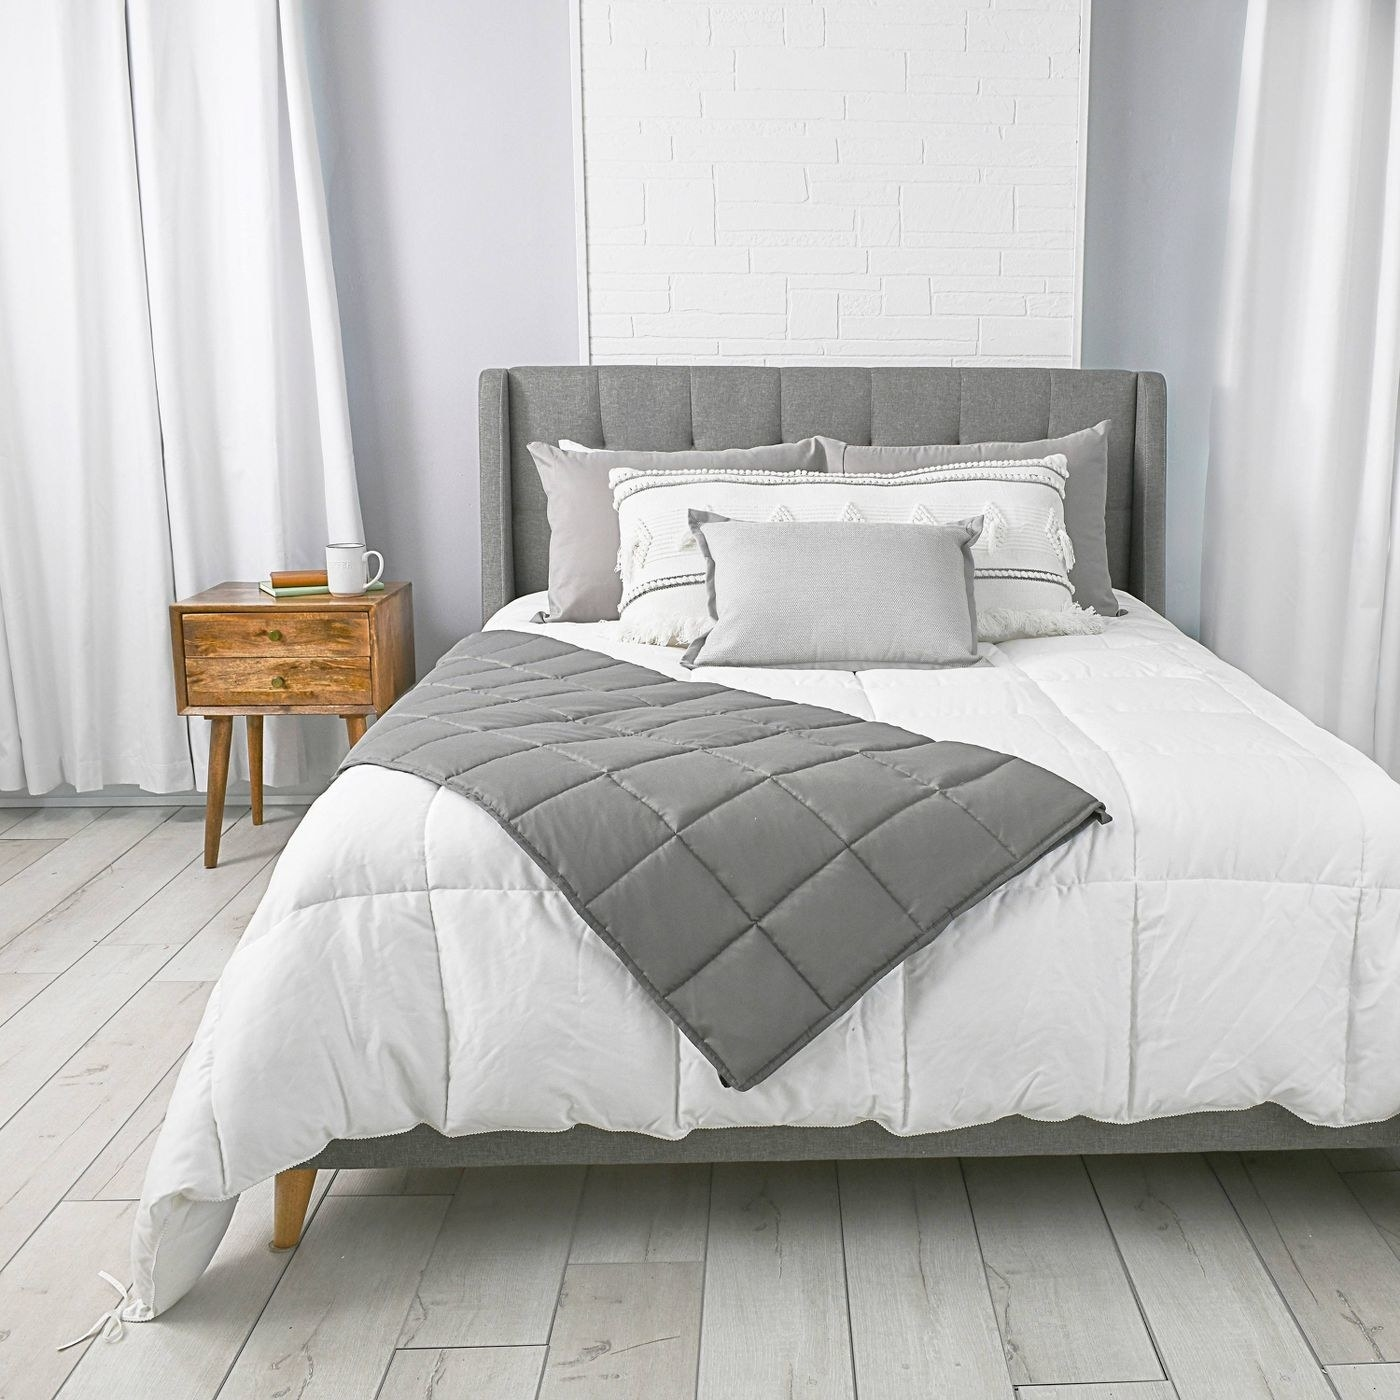 Gray weighted blanket on a white bed